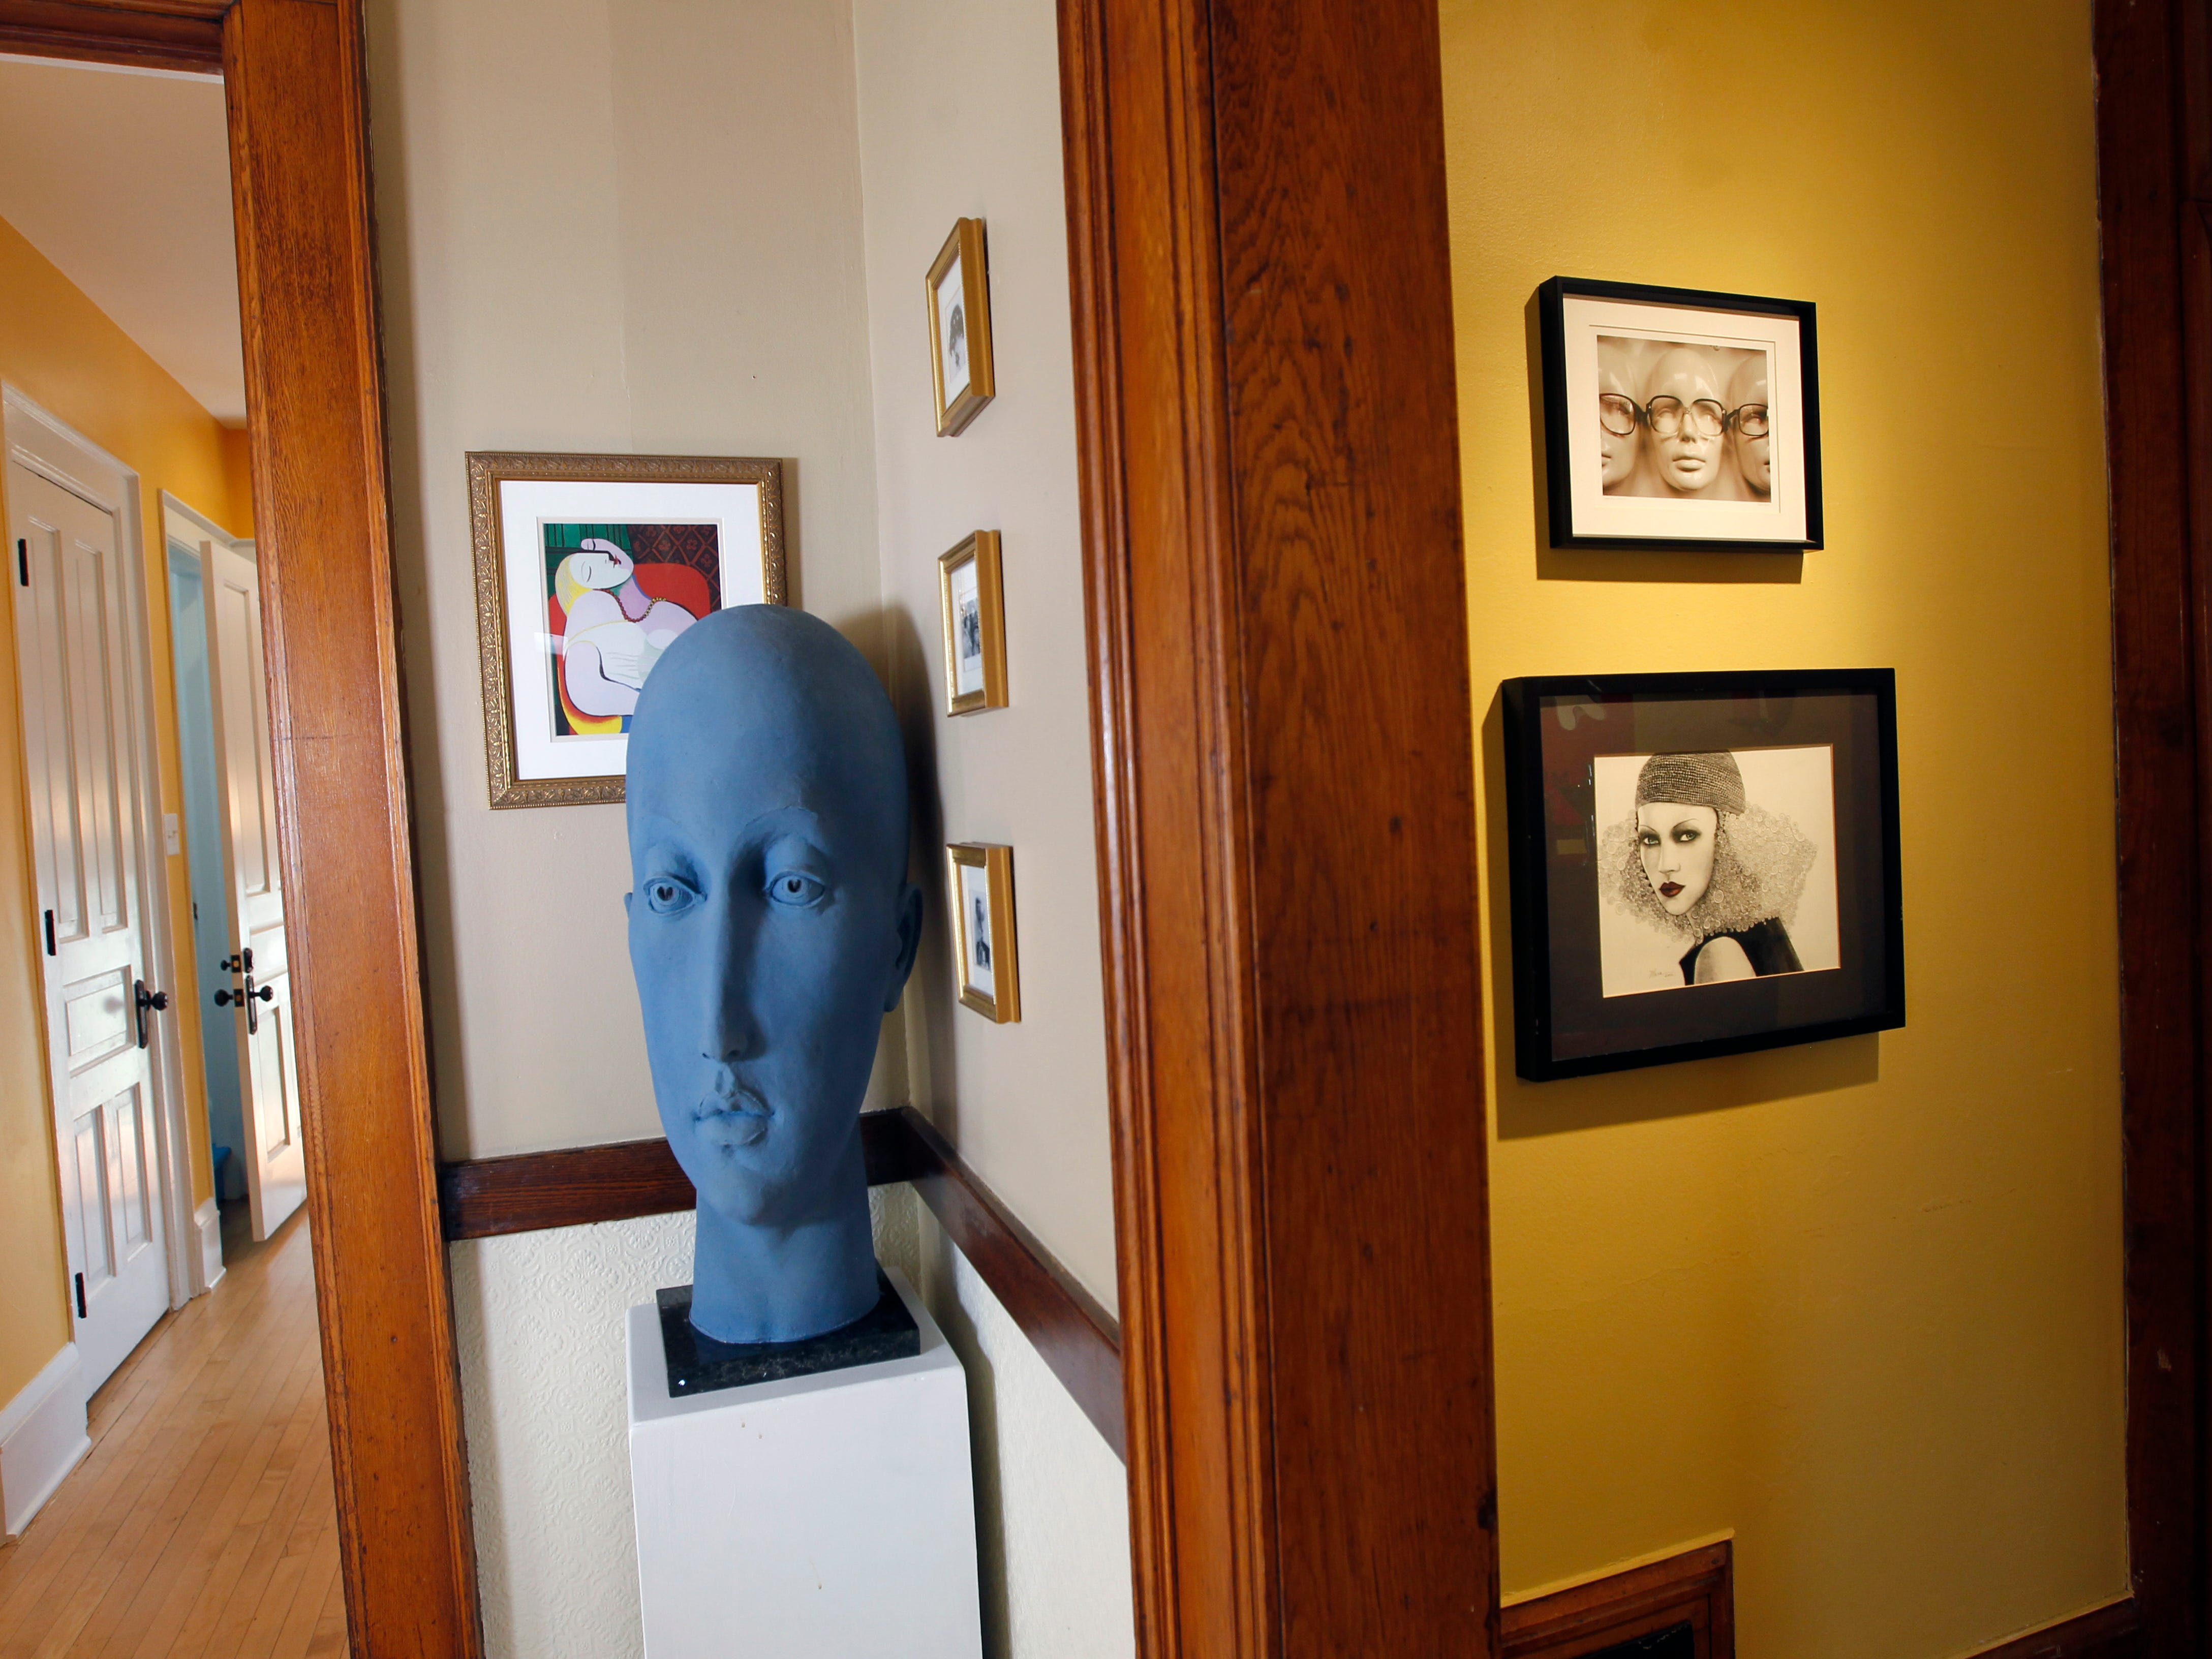 Artwork is on display throughout the house.